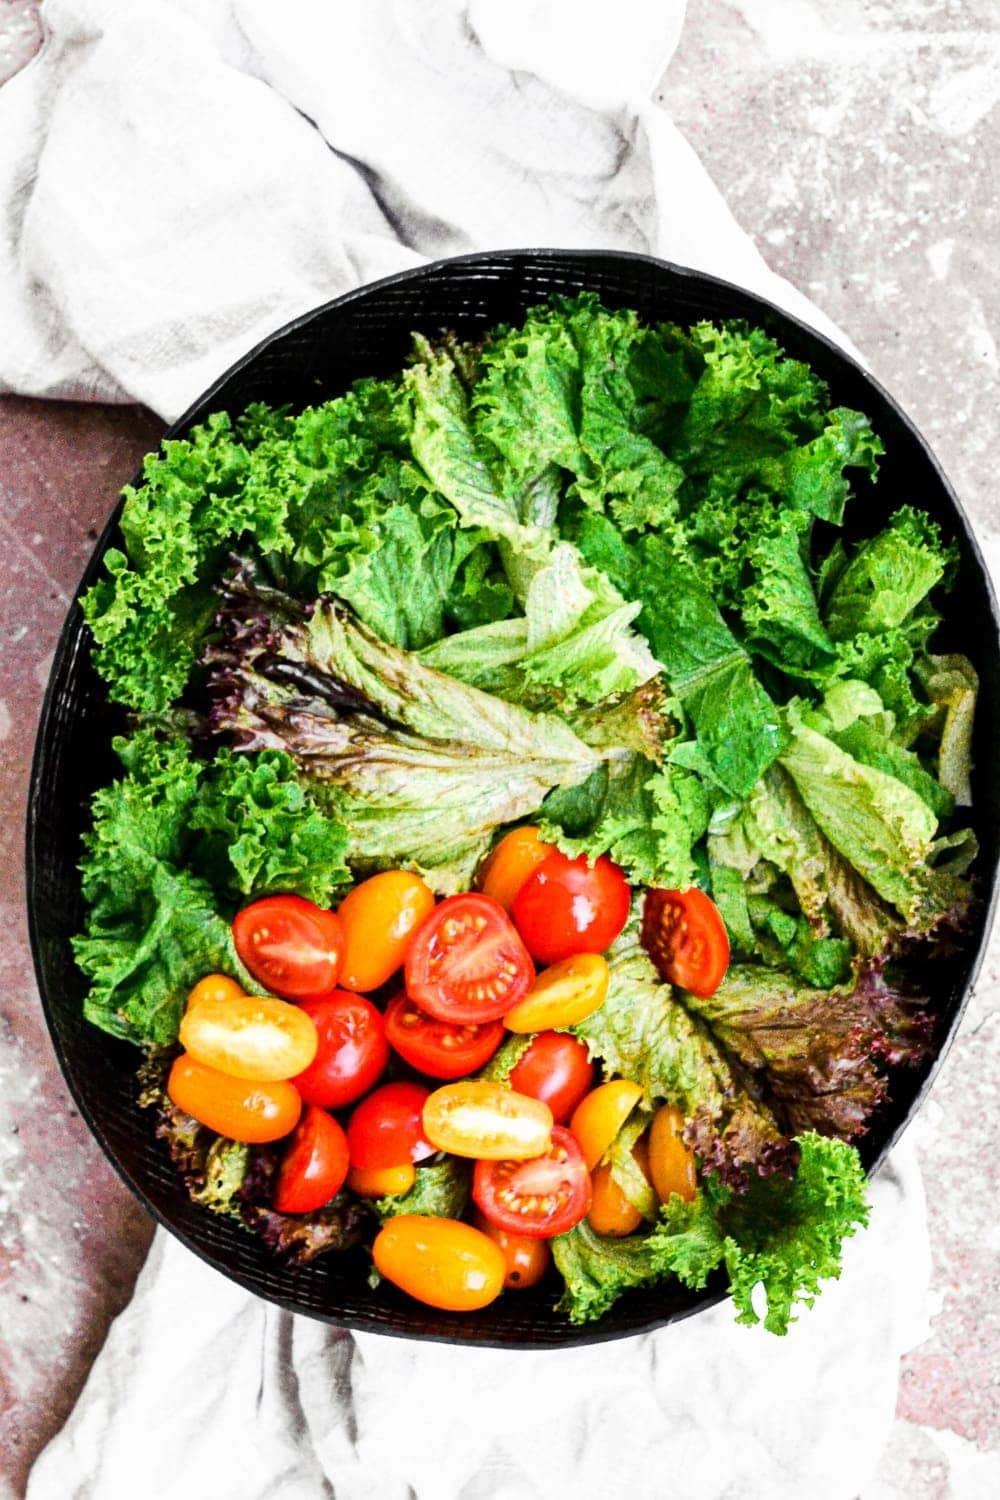 lettuce and tomatoes in bowl